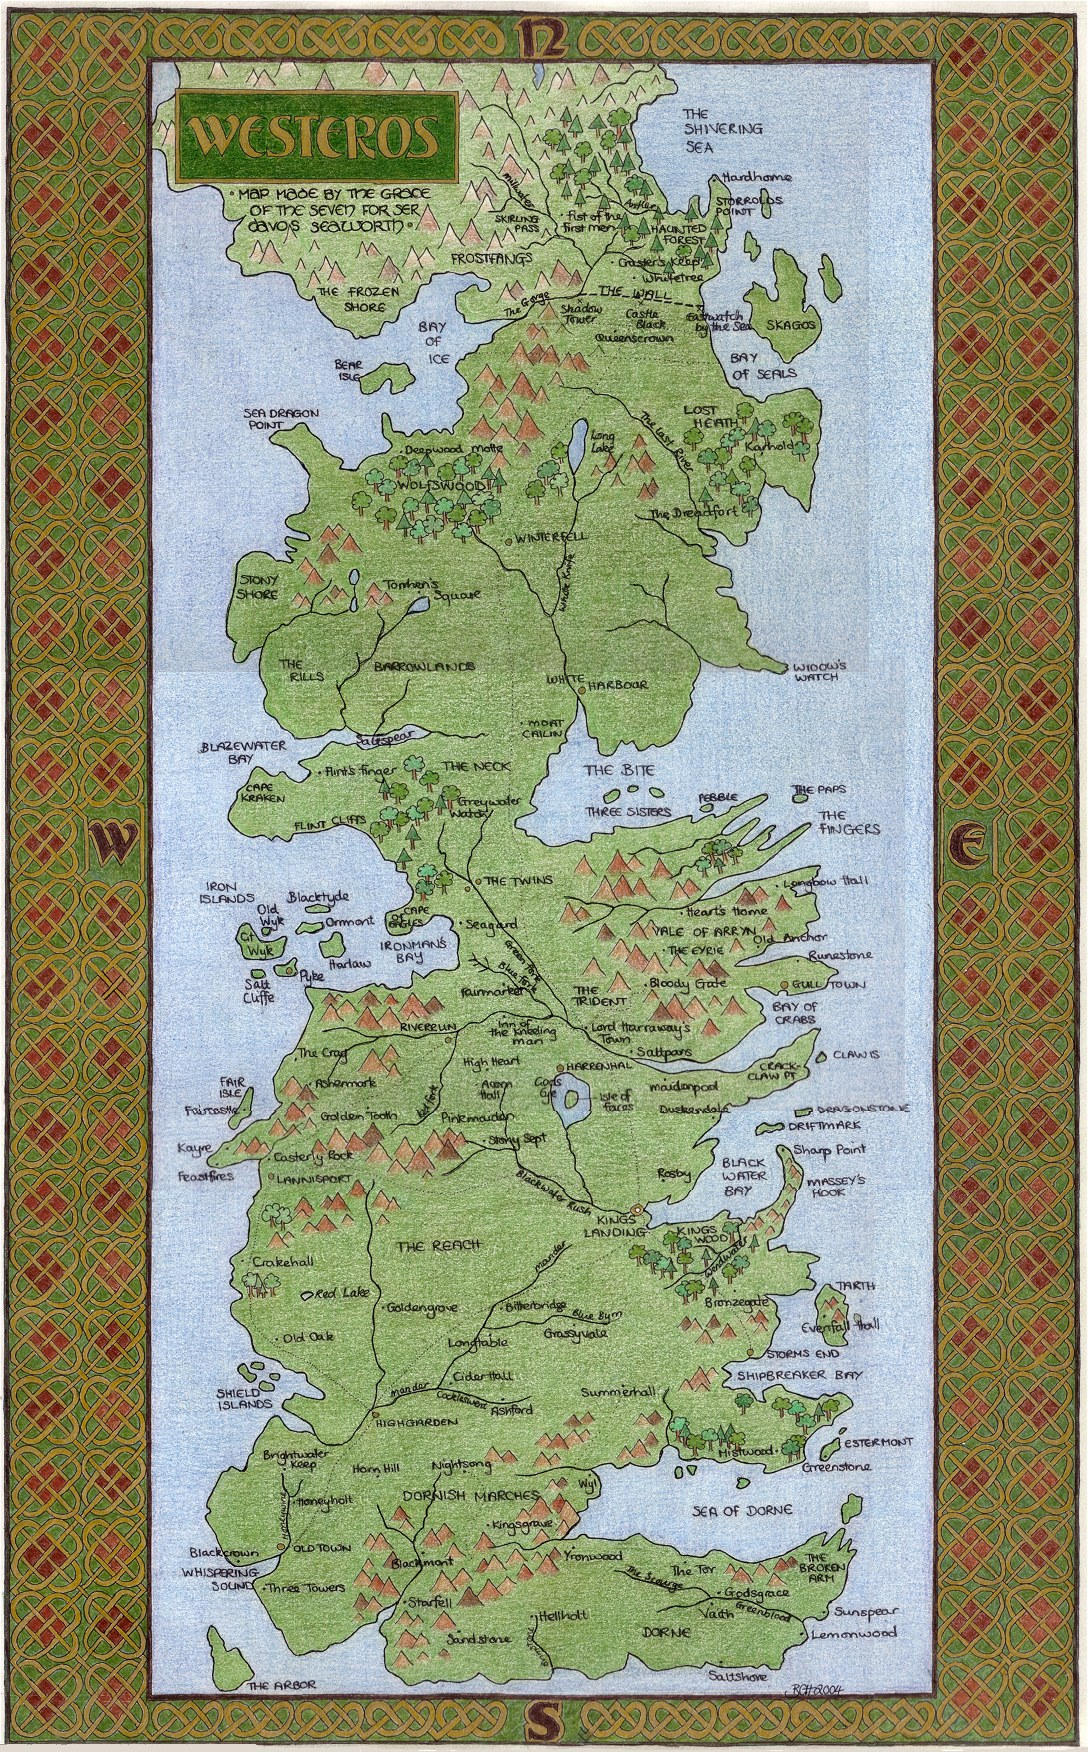 map westeros with Map Of Westeros 14022421 on Geographic Map 4 The Wall Skagos likewise S05e03 can we all just stop and appreciate how together with Game Of Thrones Google Maps Style as well 2429496 Riverrun Siege Map Game Of Thrones Build furthermore Strongholds.